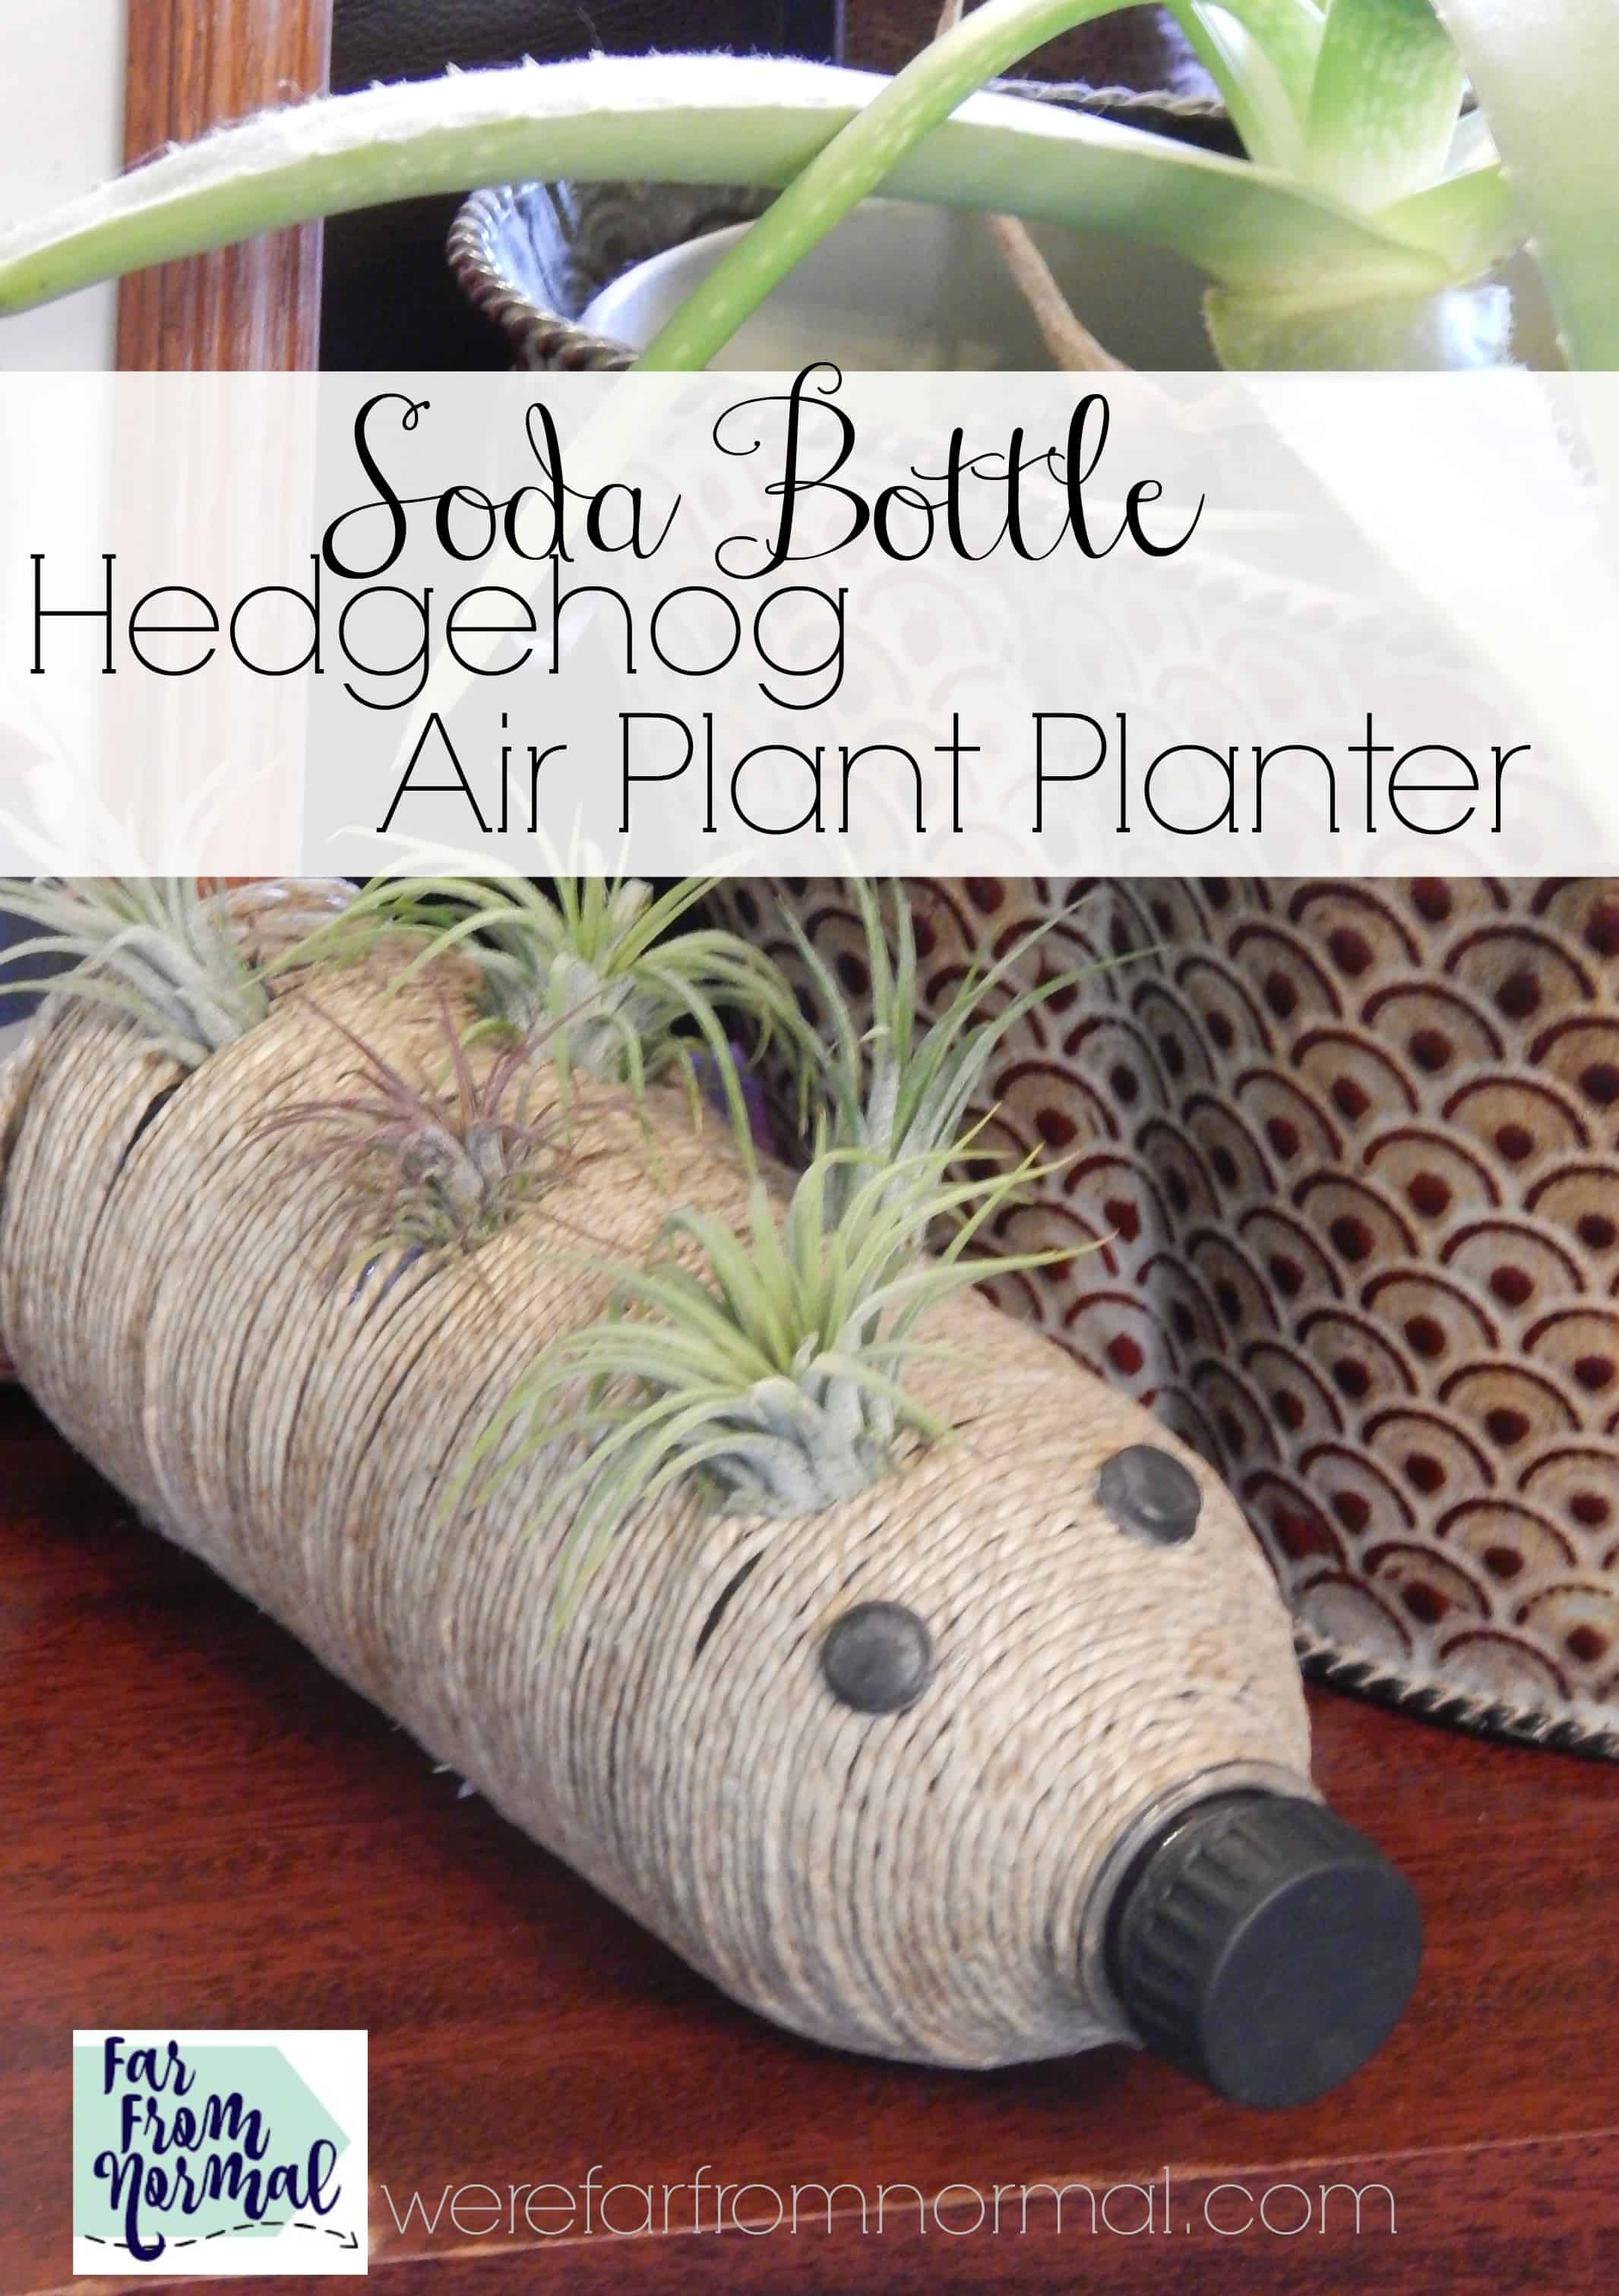 Soda Bottle Hedgehog Air Plant Planter